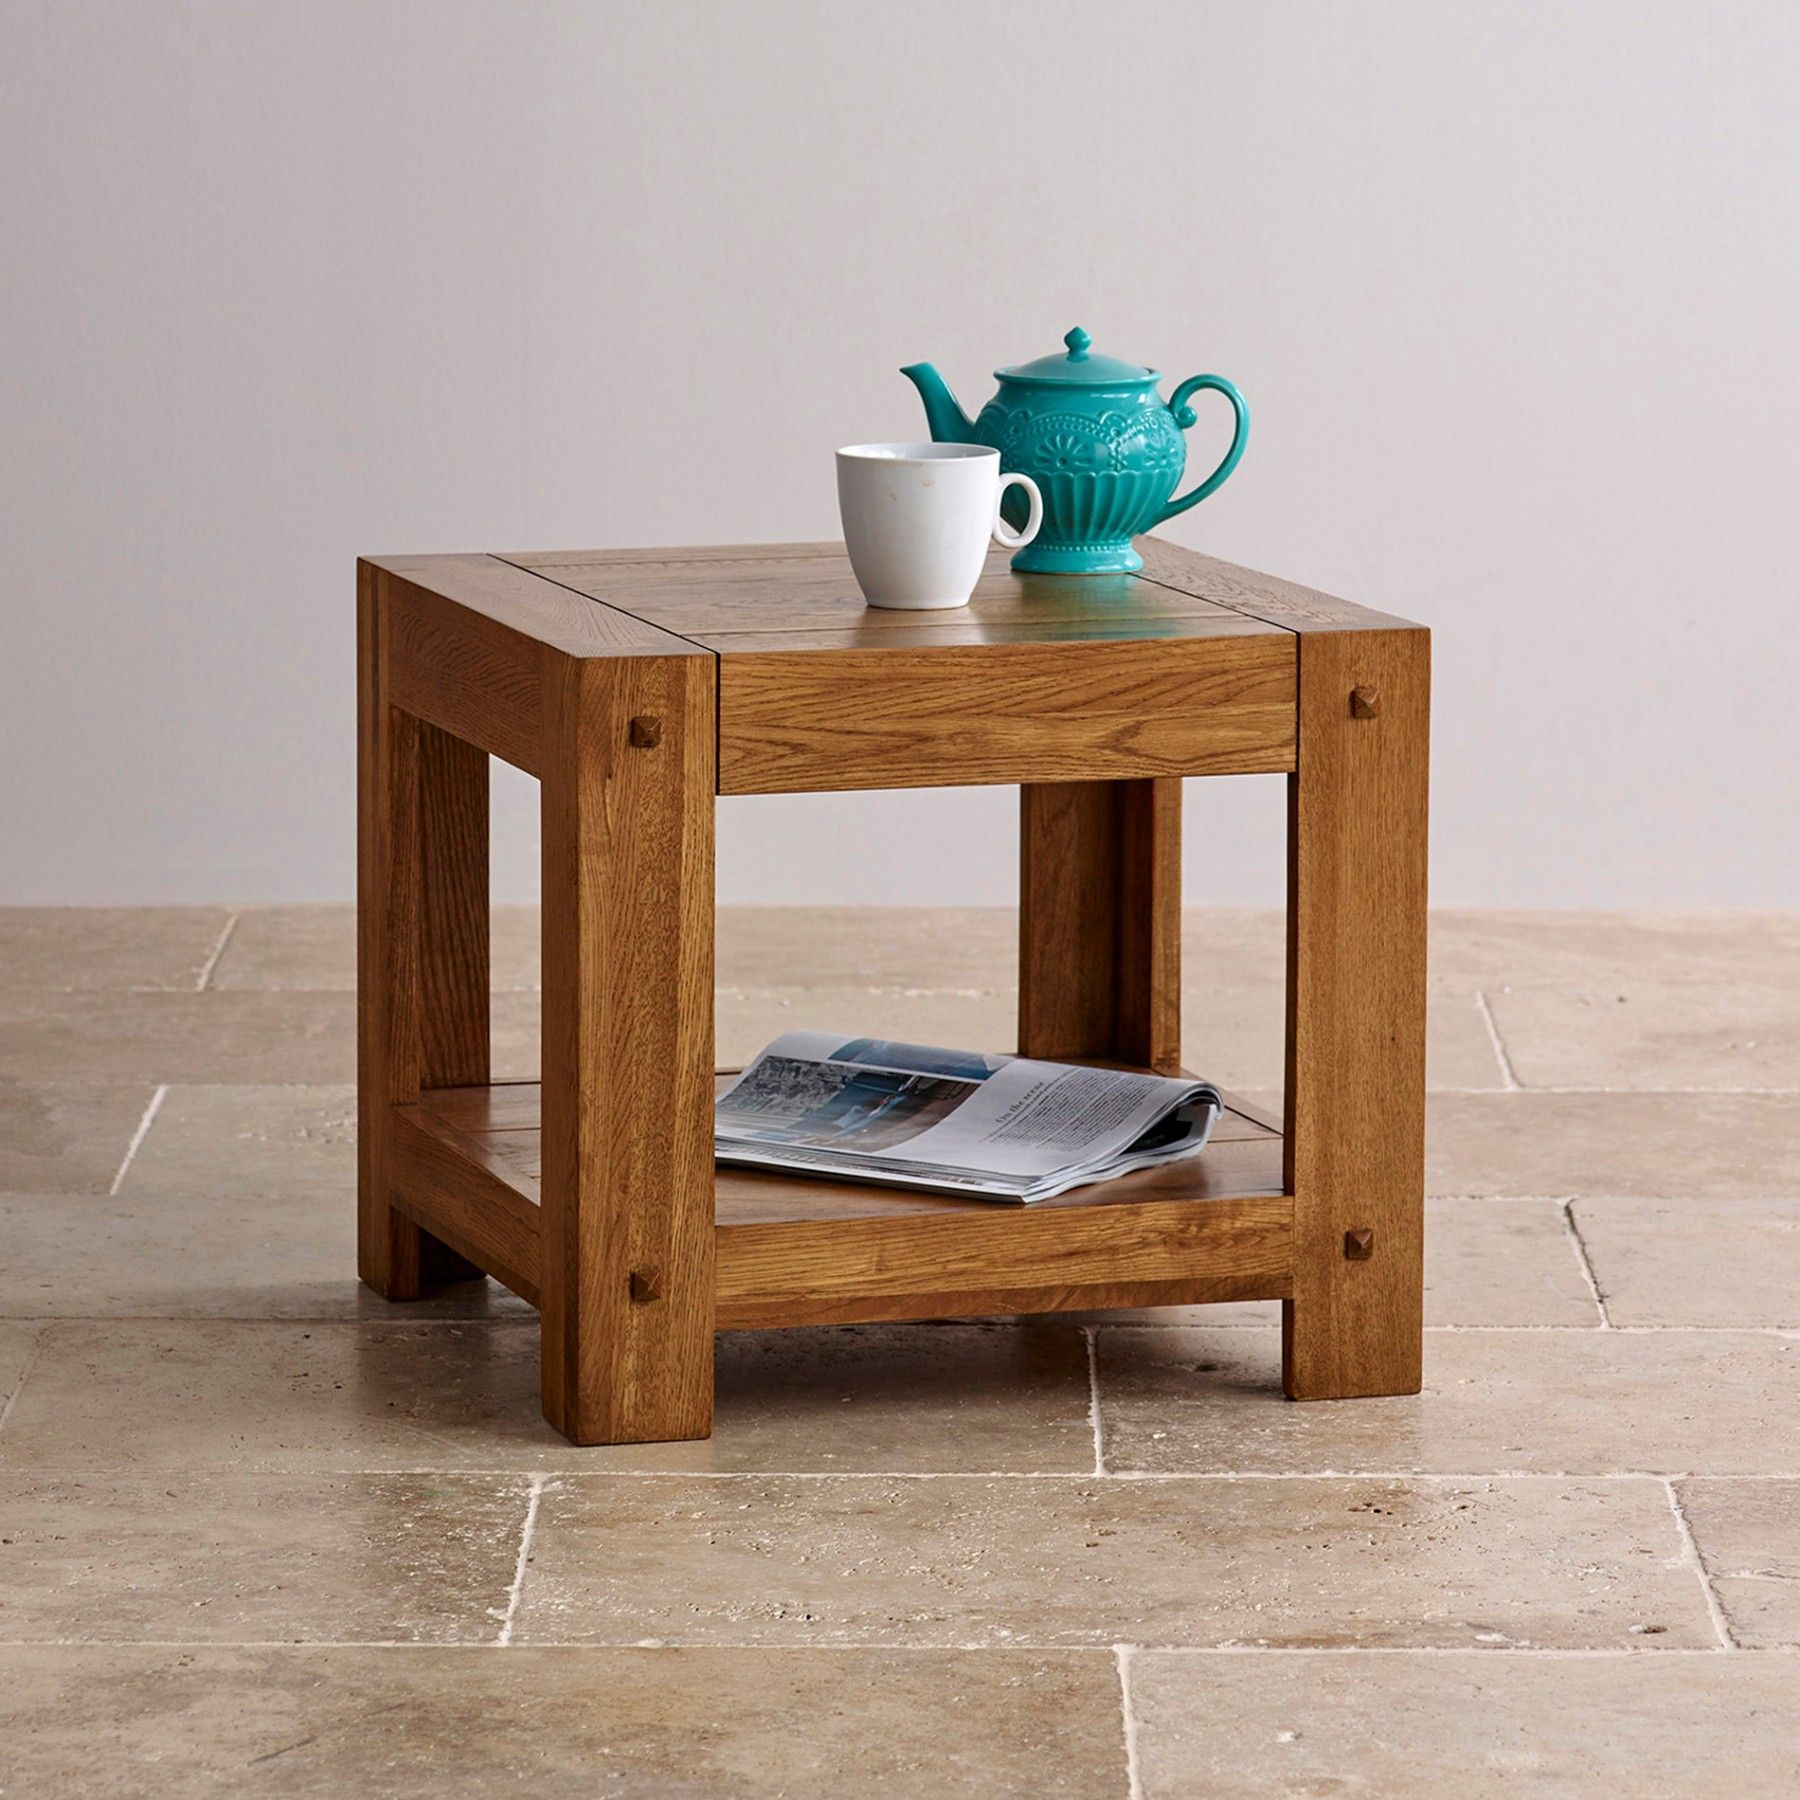 The Quercus Rustic Solid Oak Side Table Is Crafted From Premium Grade Solid  Oak Using